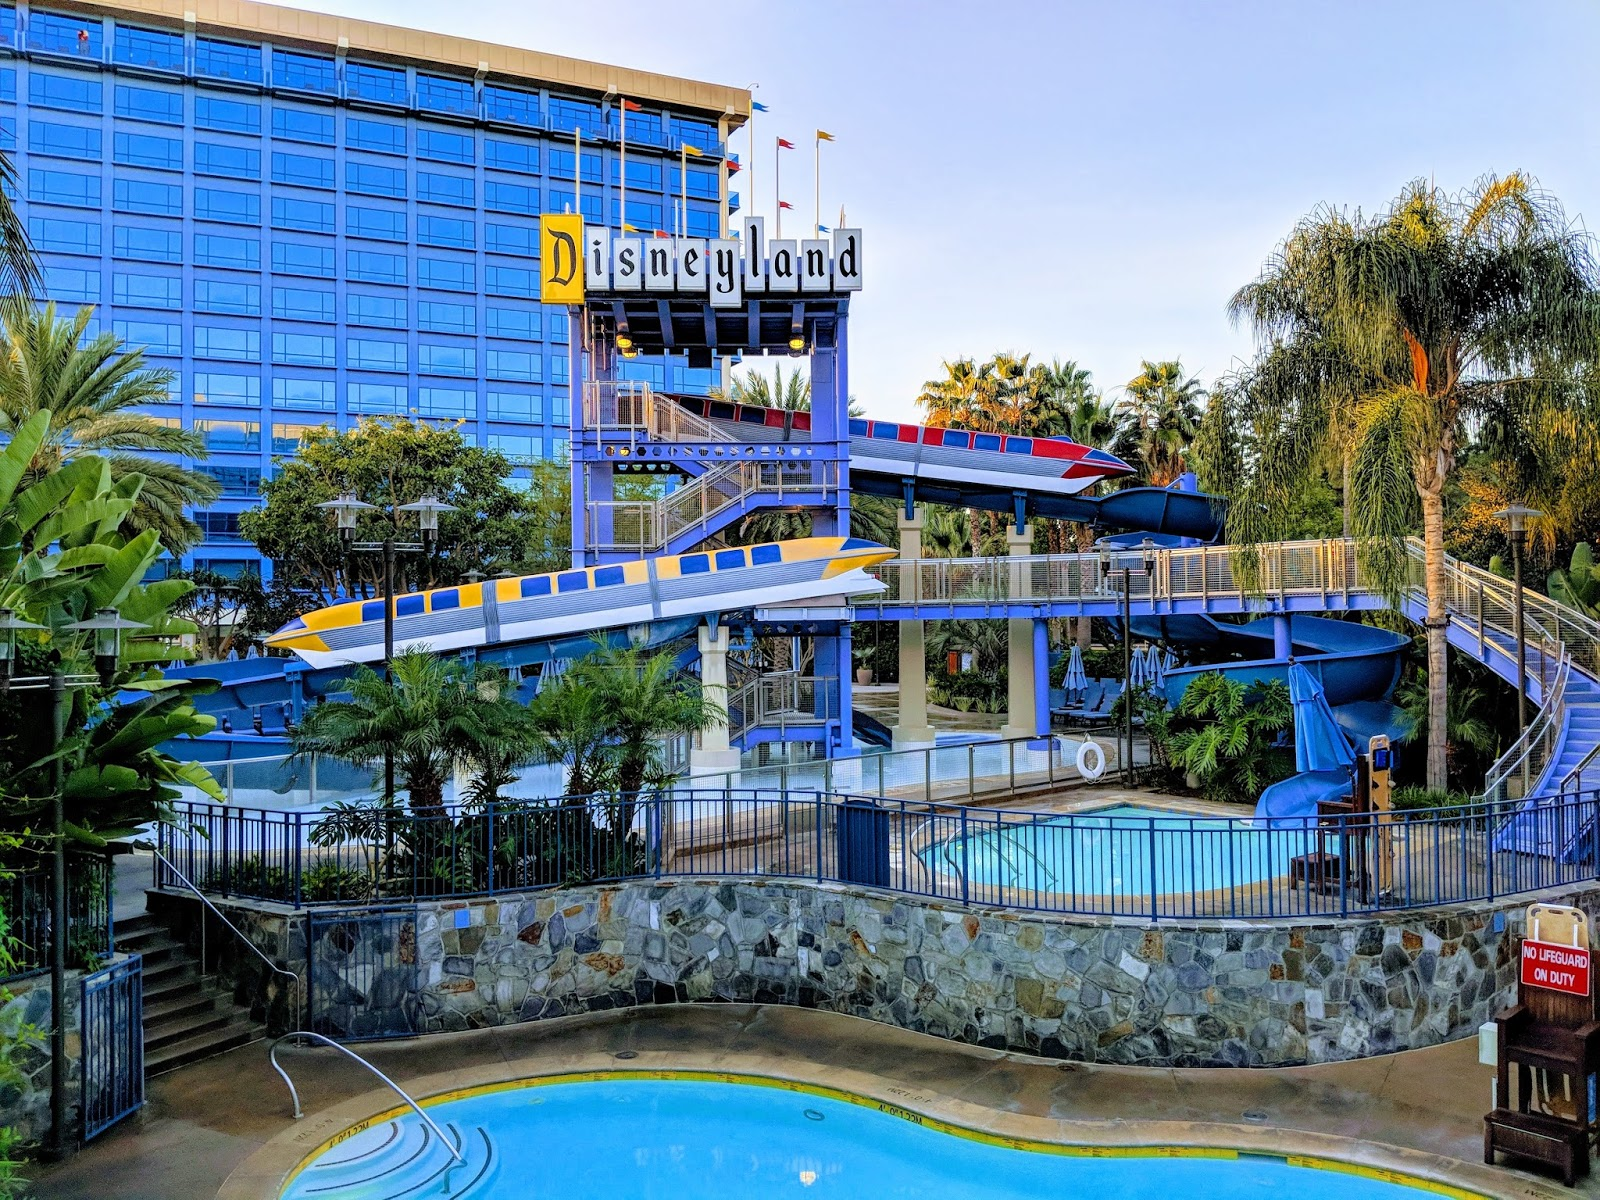 The Disneyland Hotel Is Comprised Of Three Separate Towers Fantasy Tower Adventure And Frontier Main Lobby Area Located In